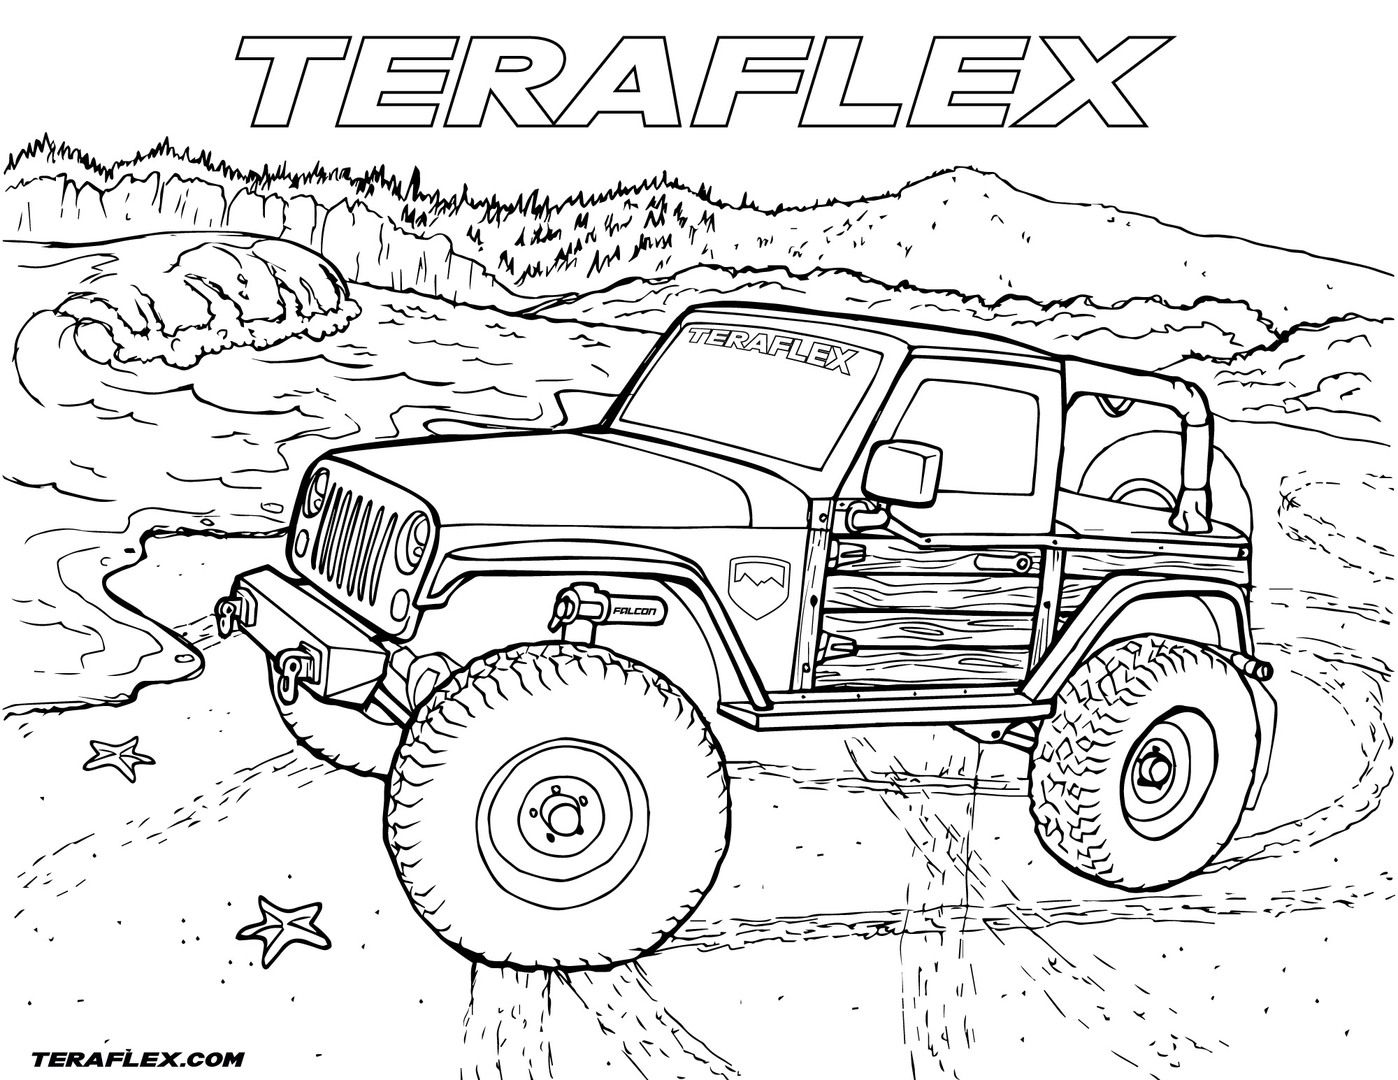 off road truck coloring pages off road vehicle coloring pages download and print off pages off coloring road truck